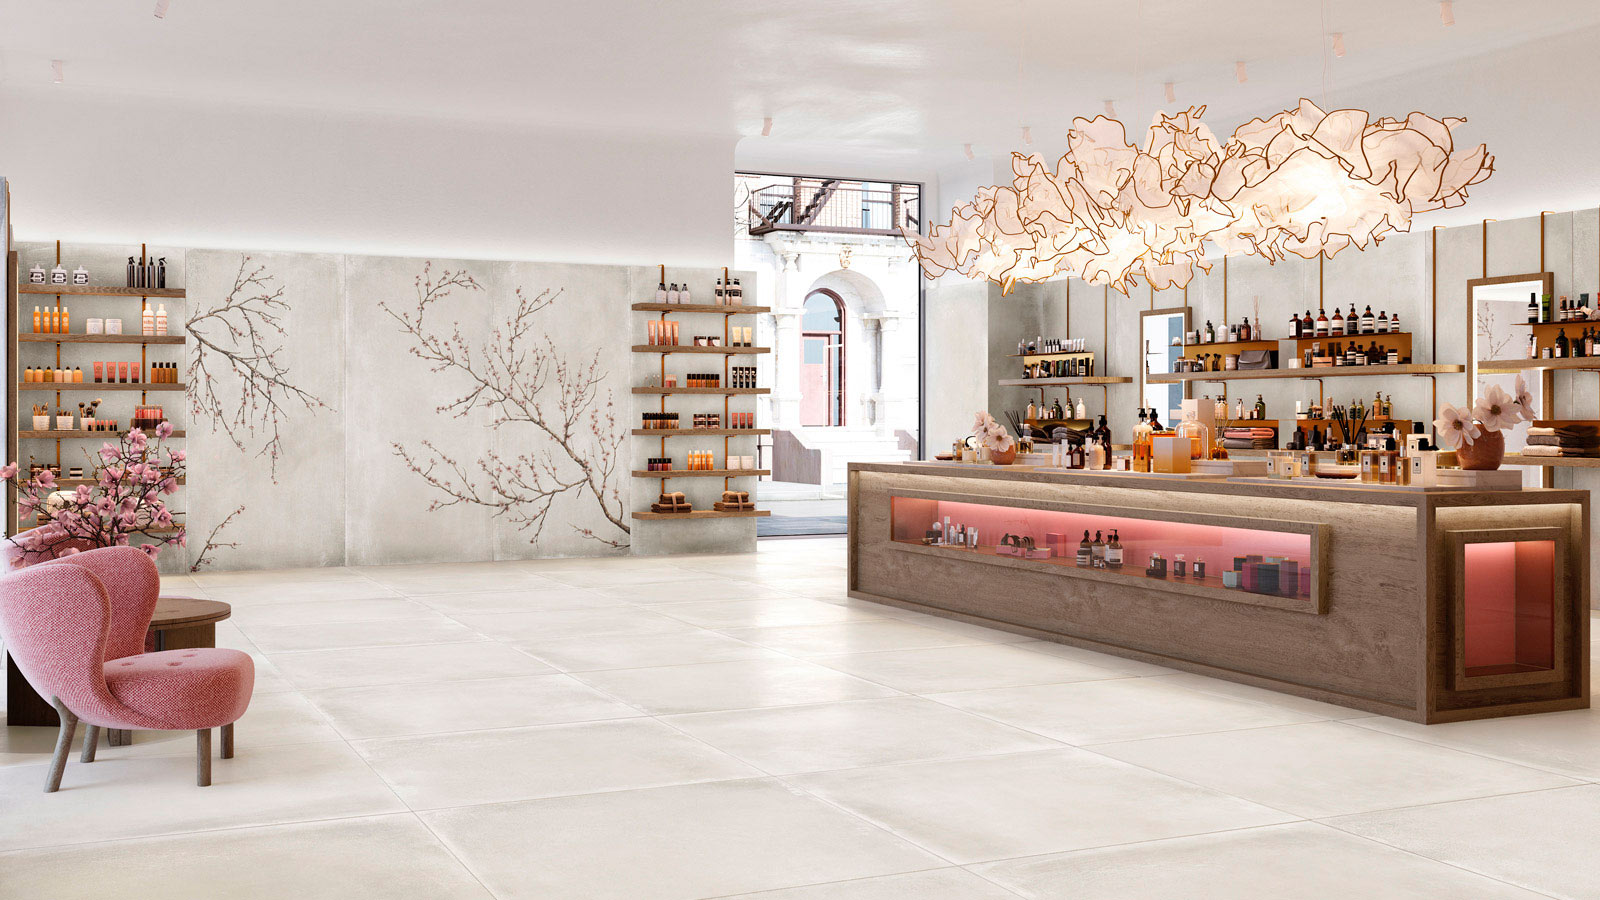 Urbatek turns watercolour into porcelain tiles at the 26th International Exhibition